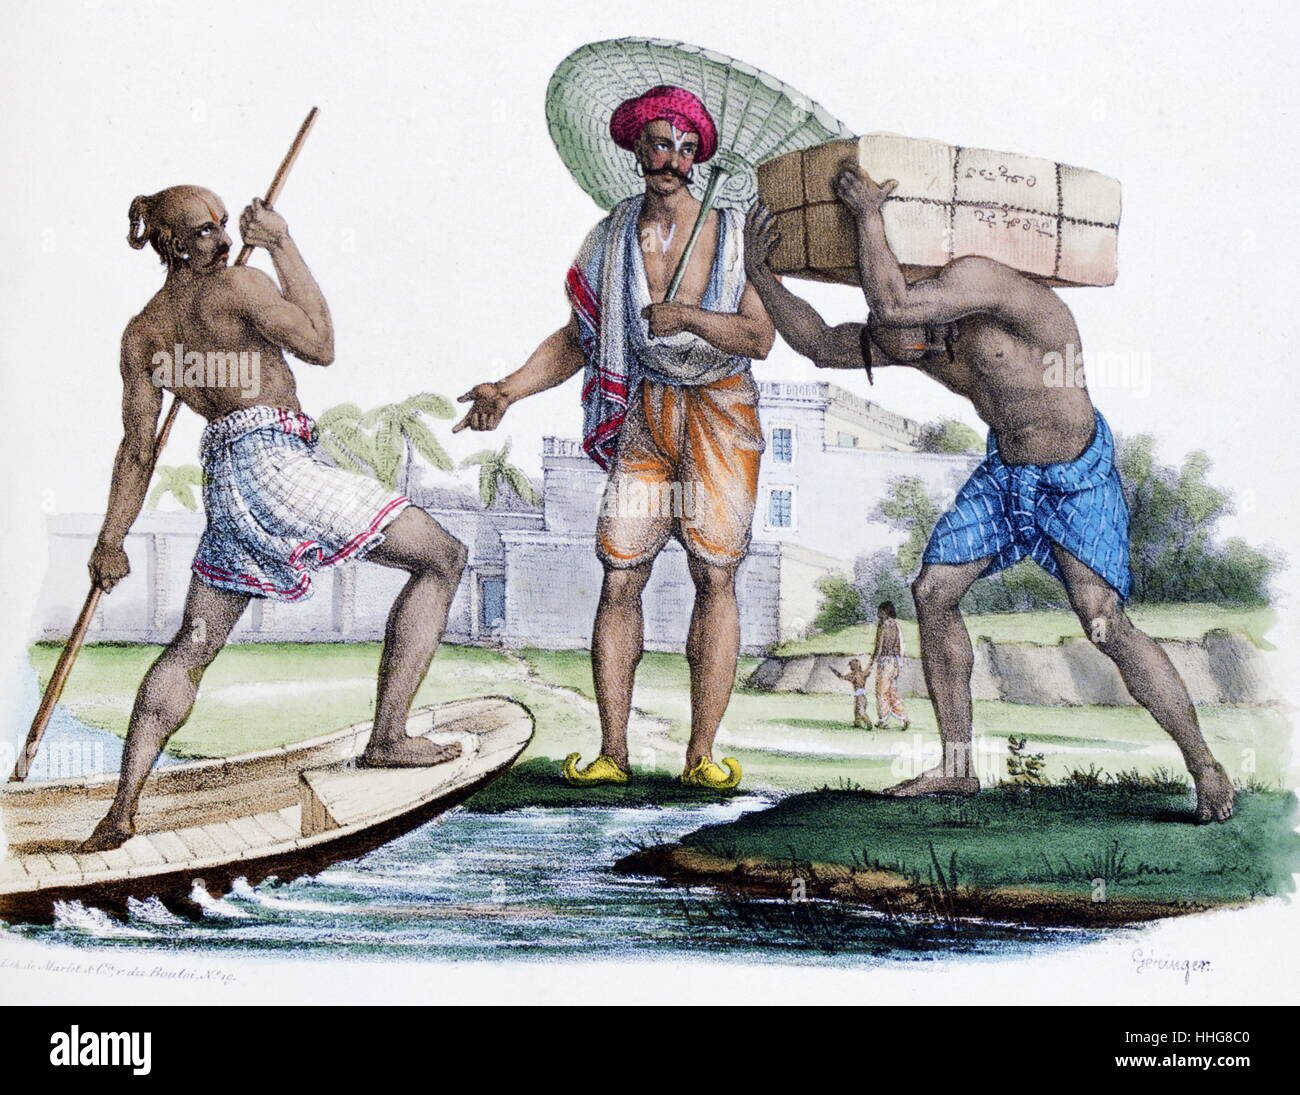 Indian Vaisha merchants. ;French; lithograph; India; By Marlet 1828. - Stock Image